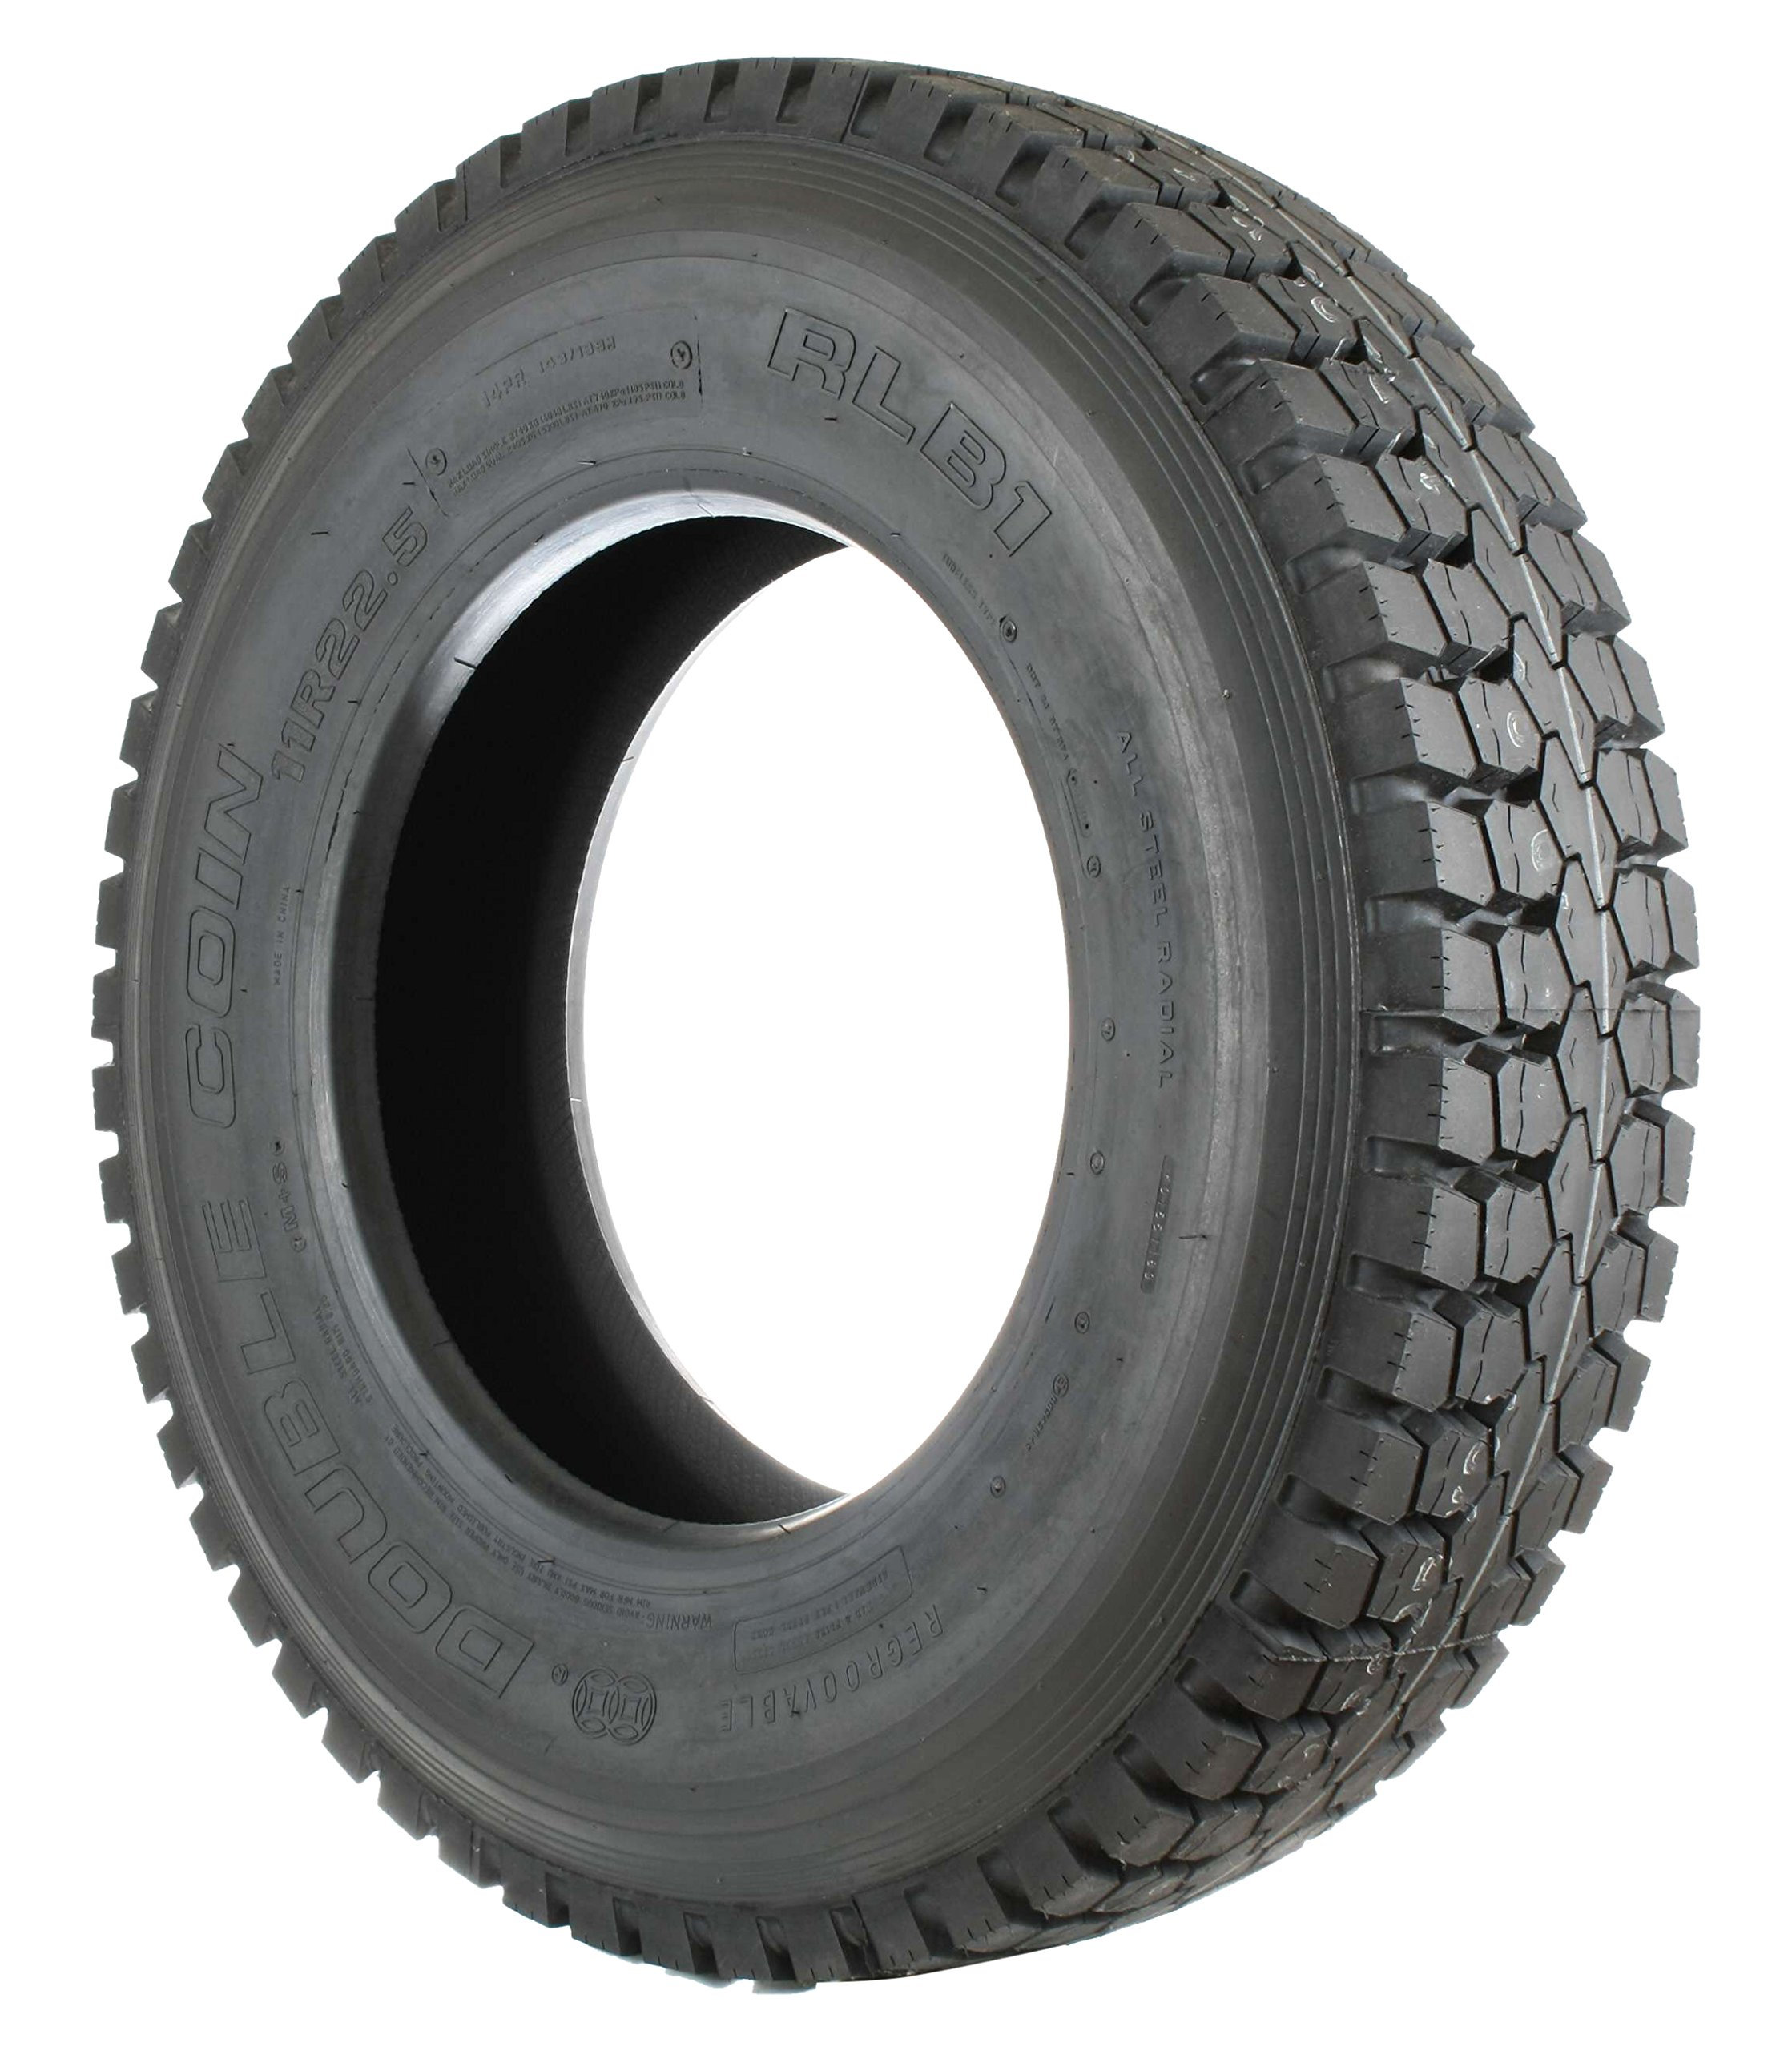 Double Coin RLB1 Open Shoulder Drive-Position Commercial Radial Truck Tire - 245/70R19.5 16 ply